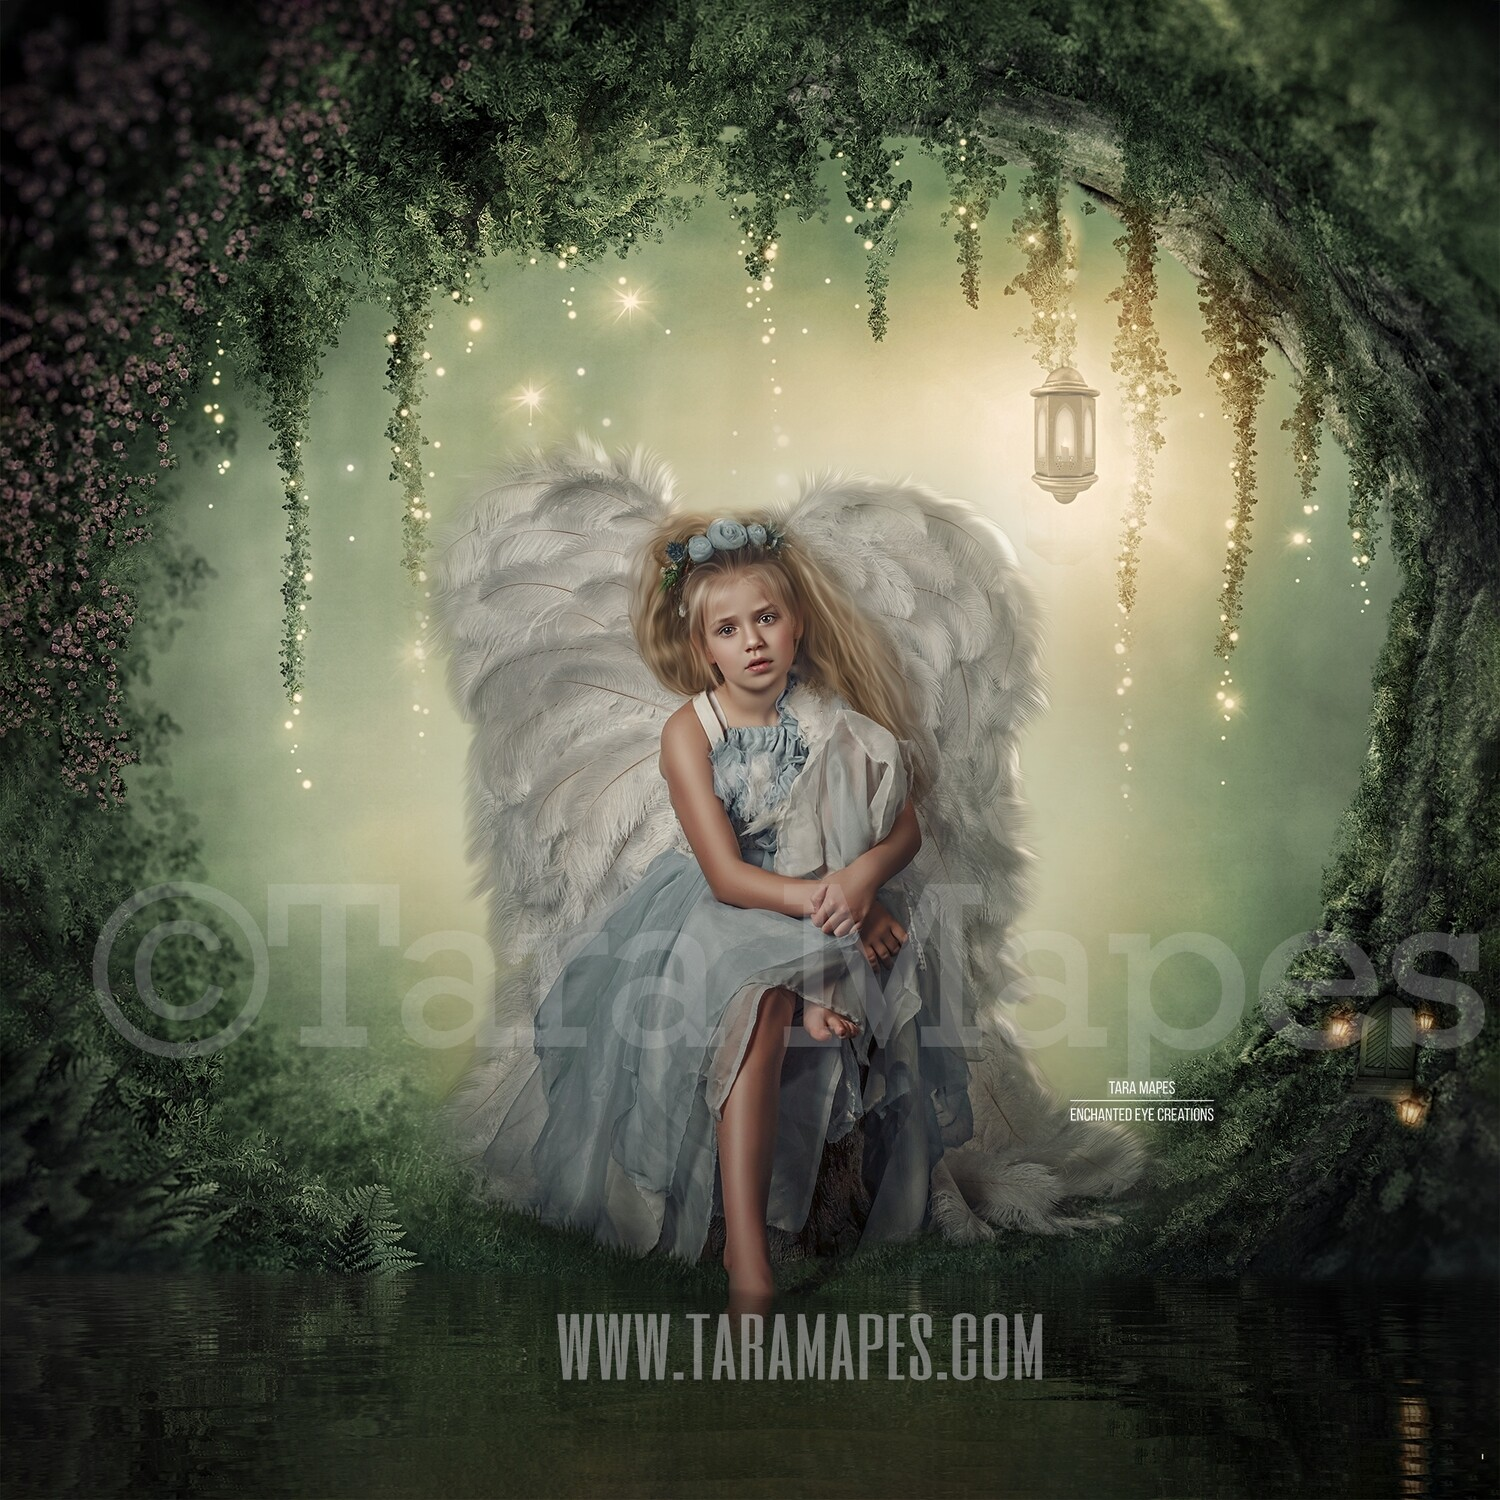 Enchanted Forest - Fairy Tree by Pond - Fairy Arch - Magical Fairy Photoshop Digital Background / Backdrop